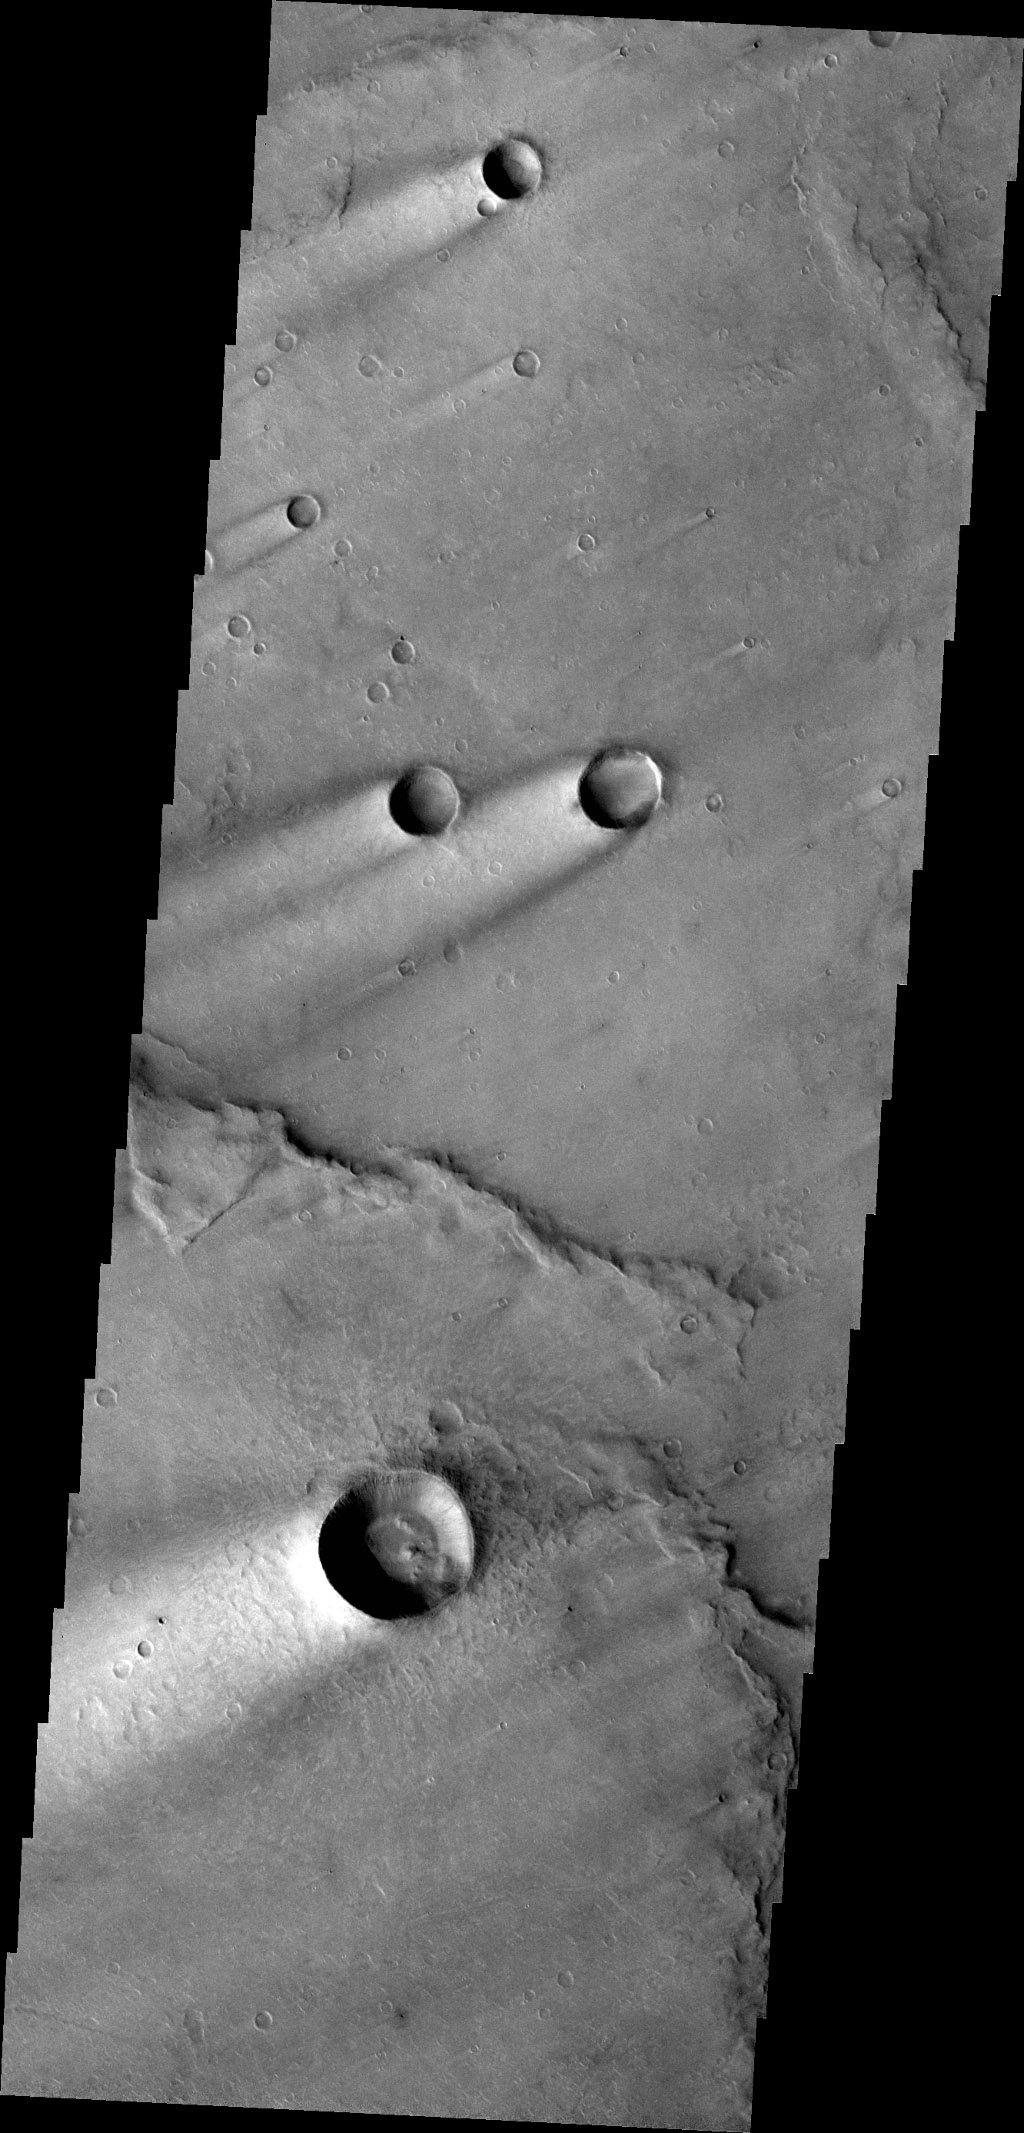 These windstreaks are located on Syrtis Major Planum, as shown in this image captured by NASA's 2001 Mars Odyssey spacecraft.